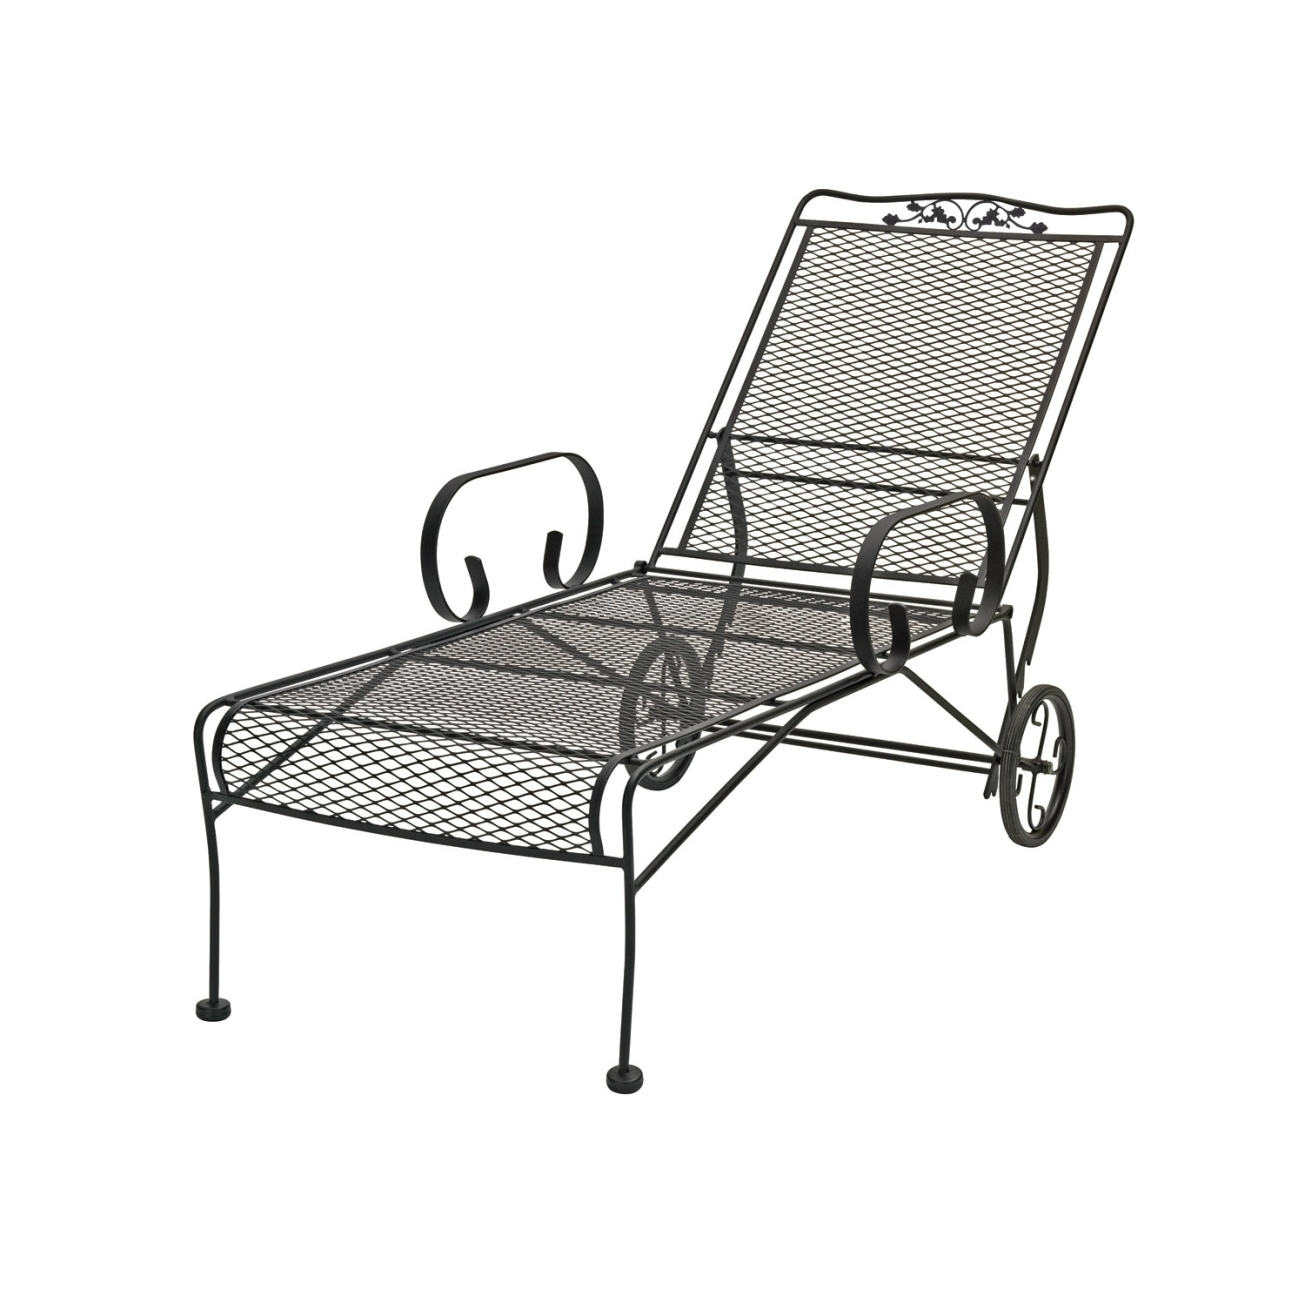 2017 Lovable Patio Chaise Lounge Chairs Outdoor Lounge Chairs Outdoor Inside Outdoor Chaise Lounge Chairs (View 1 of 15)